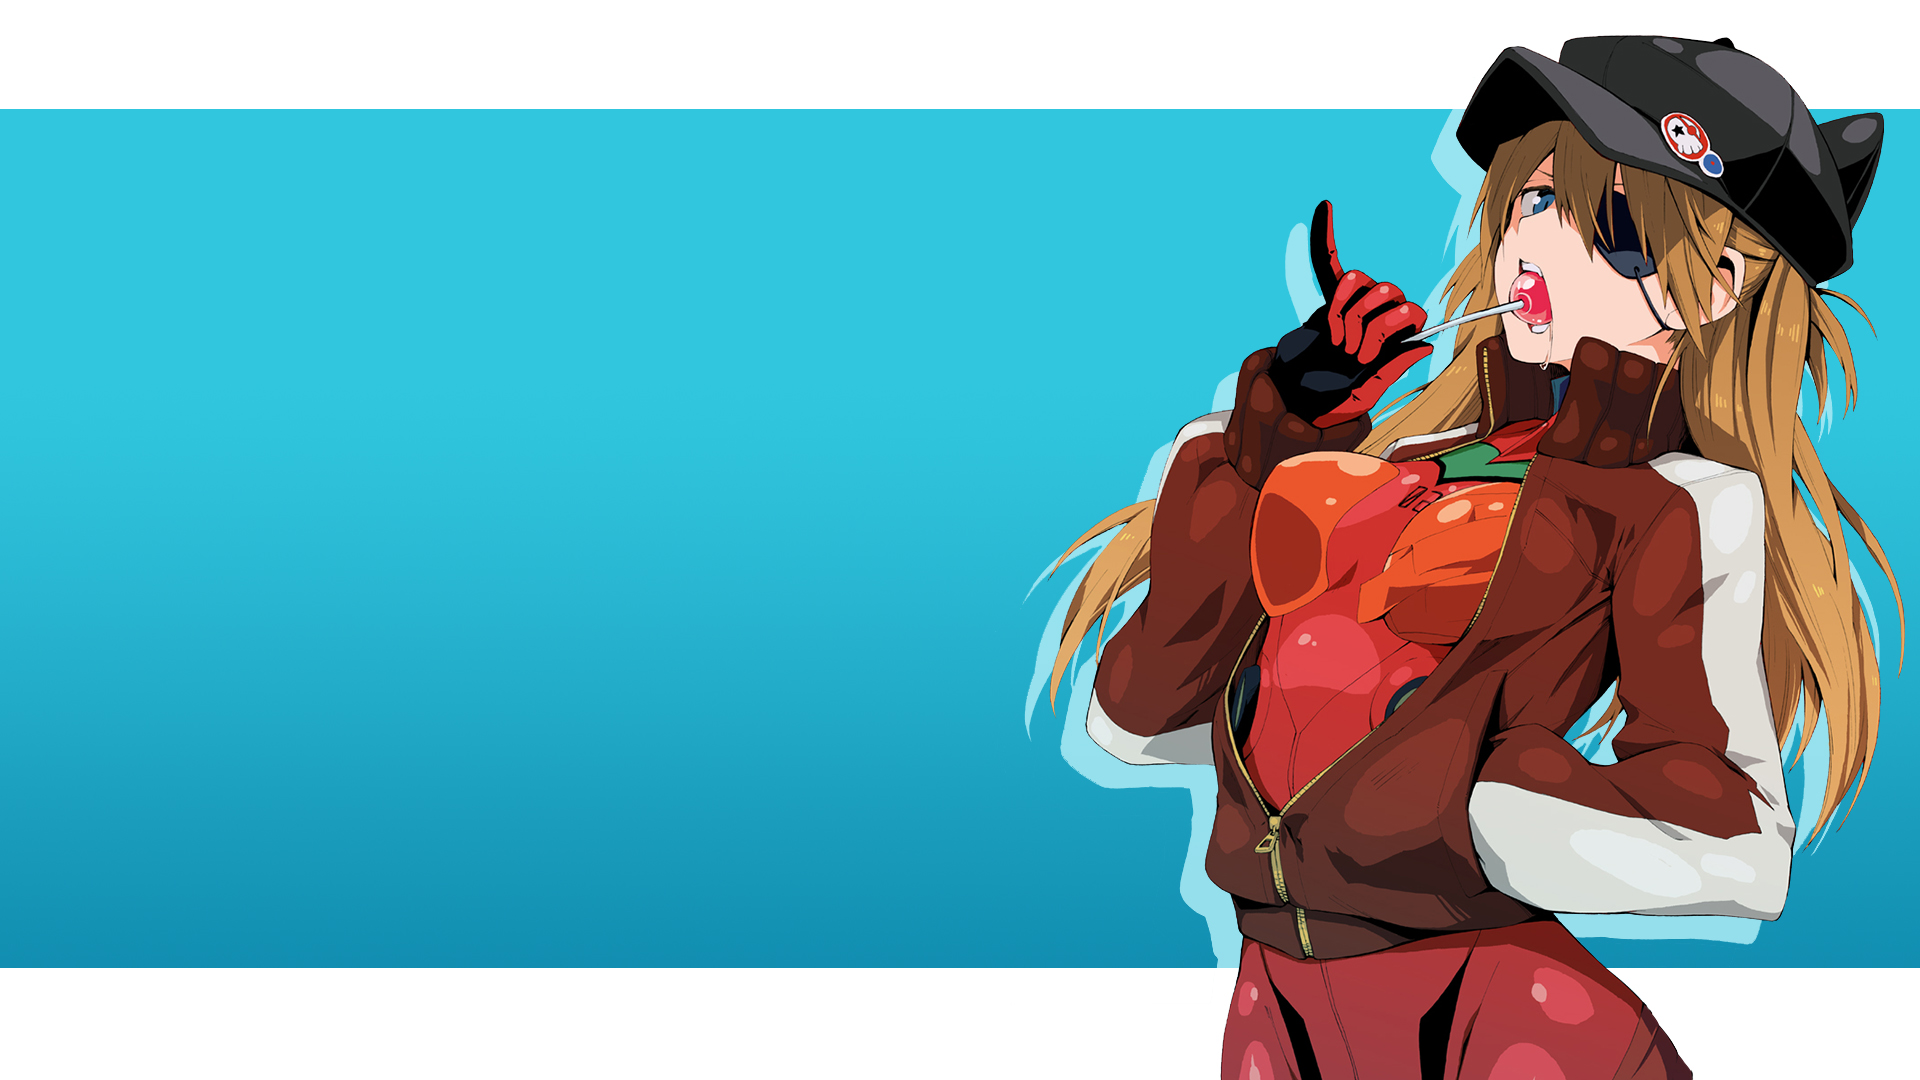 Collection of Asuka Wallpaper on HDWallpapers